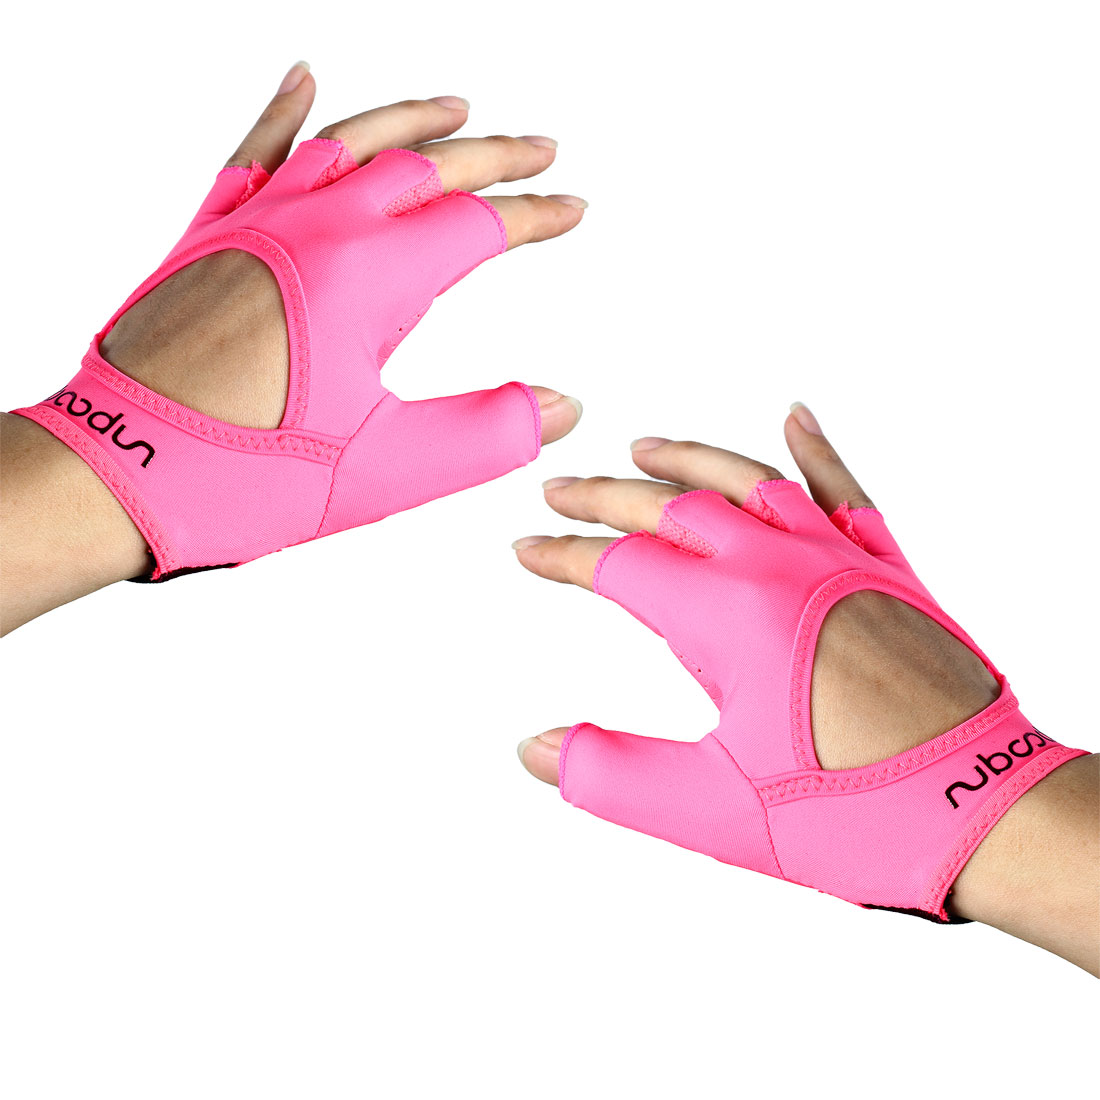 Boodun Authorized Cycling Yoga Gym Workout Fitness Half Finger Palm Support Gloves Pink Size S Pair